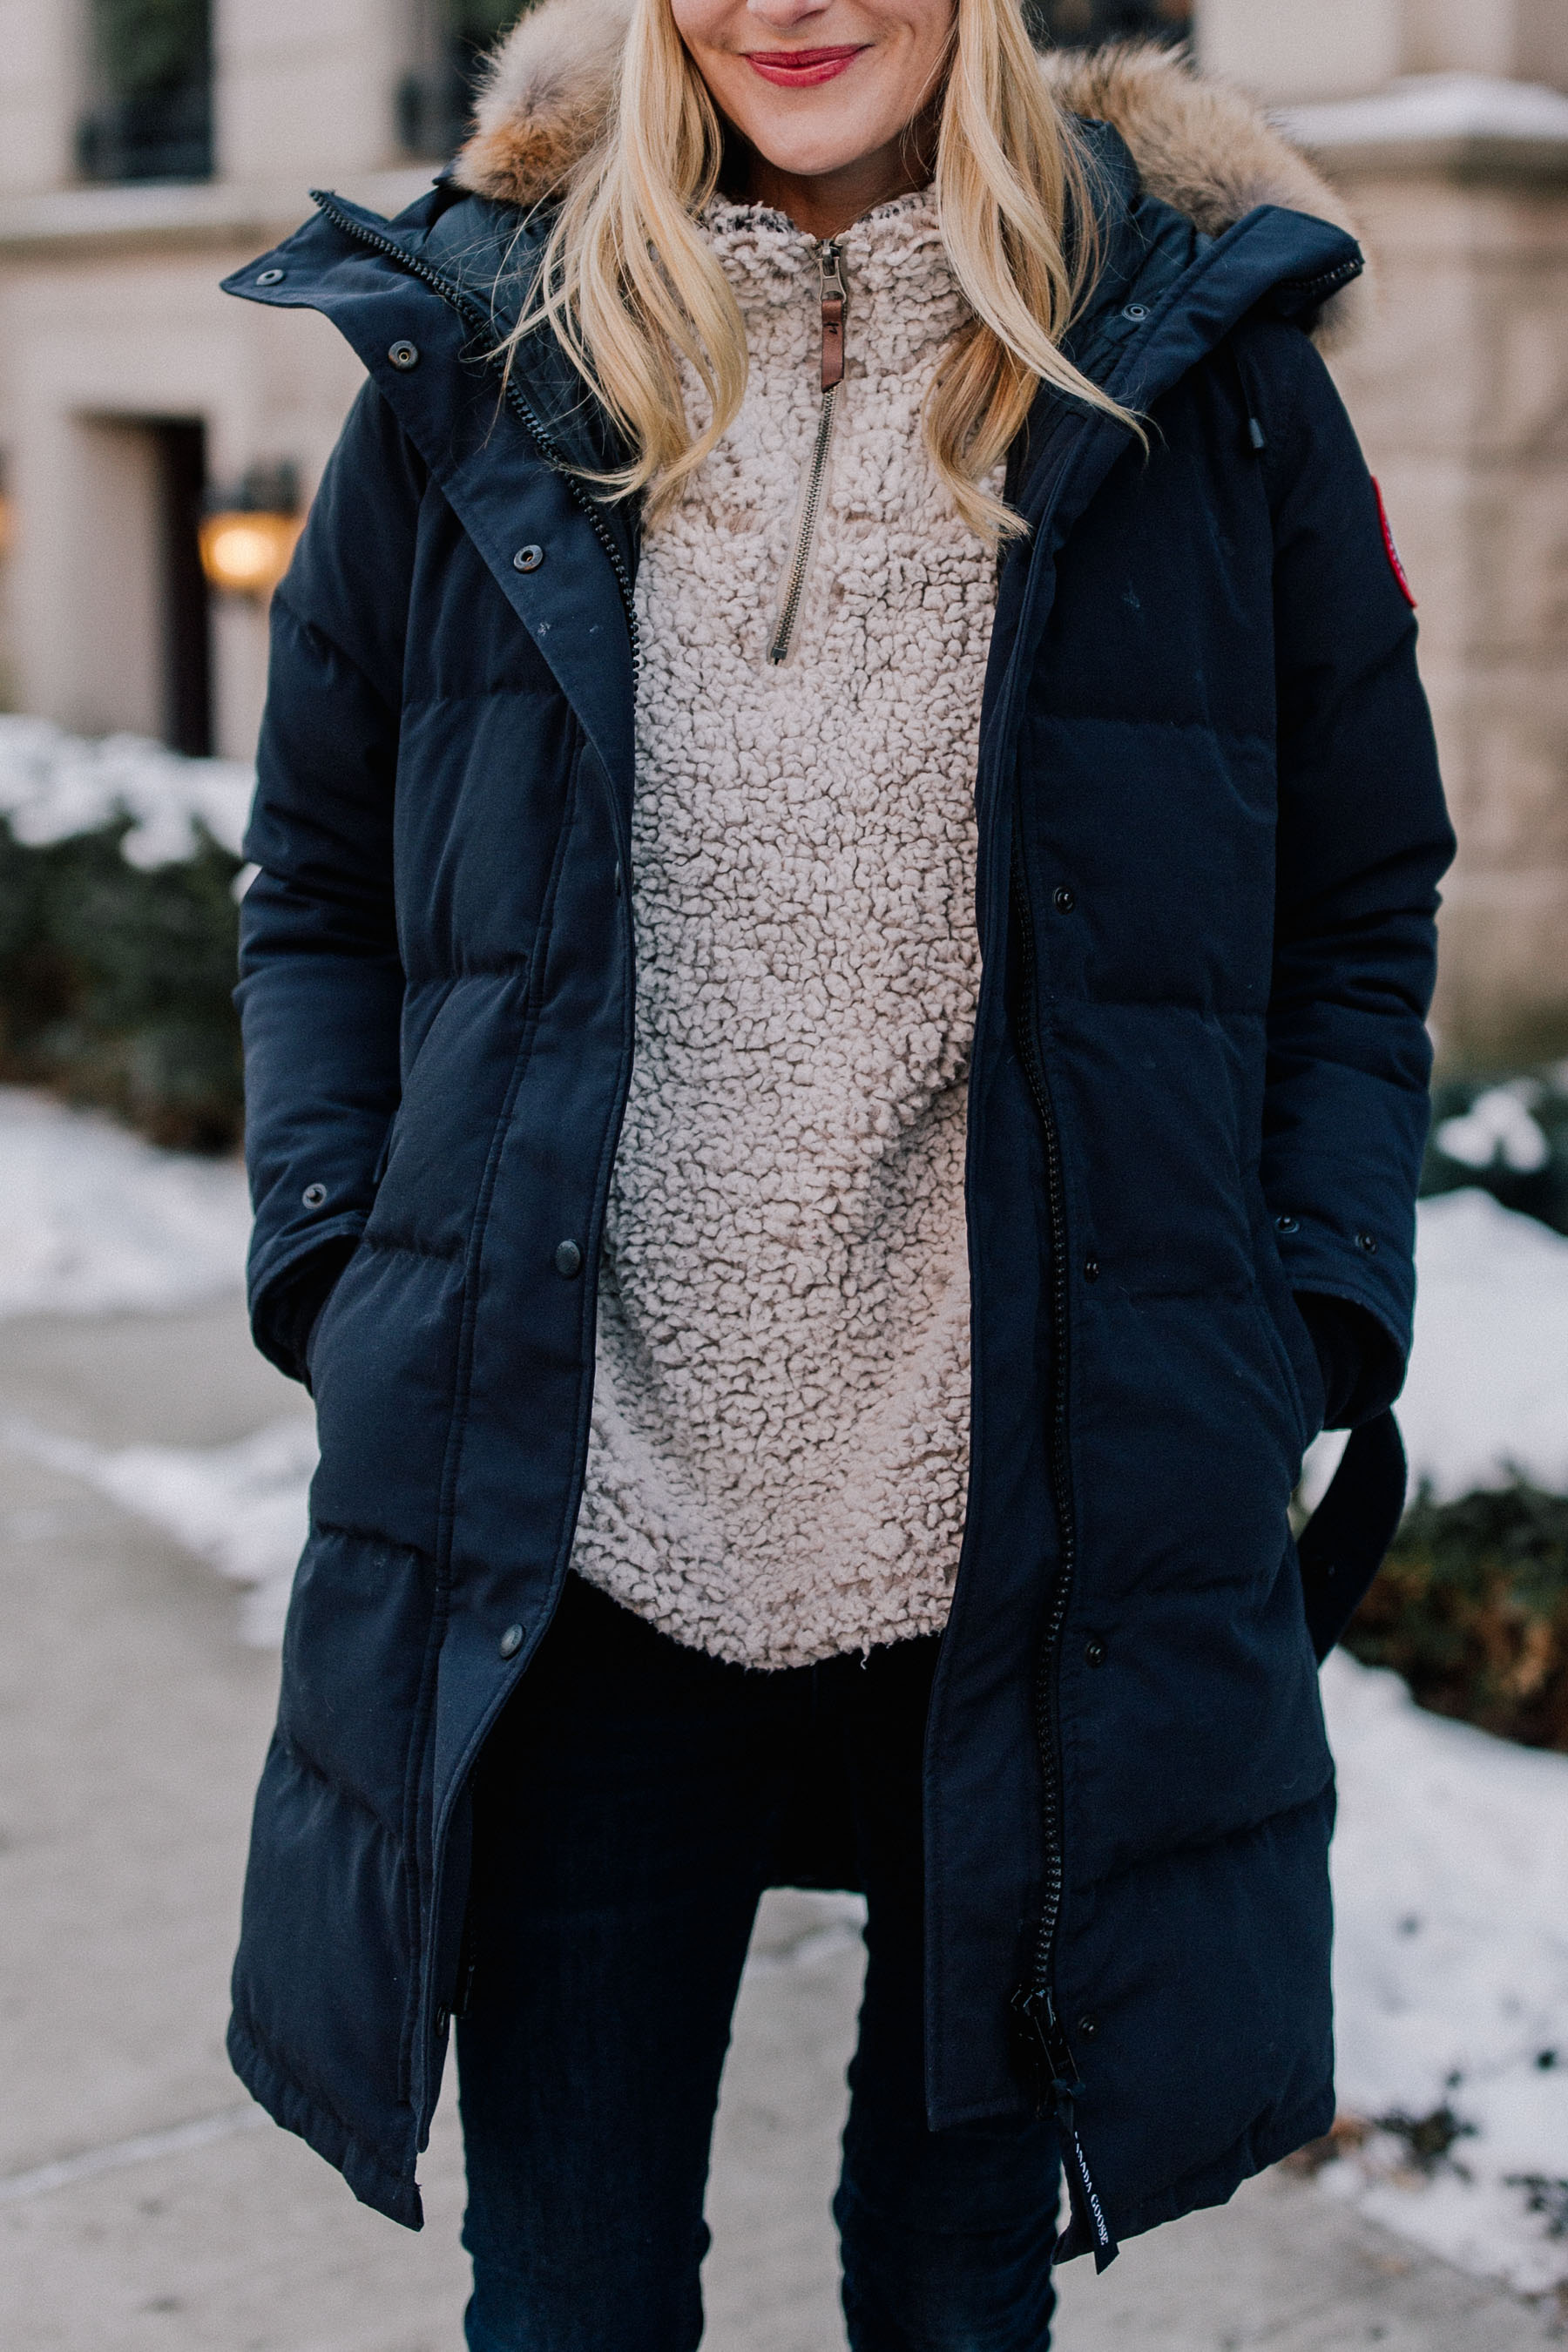 Navy Coat For Winter in Chicago